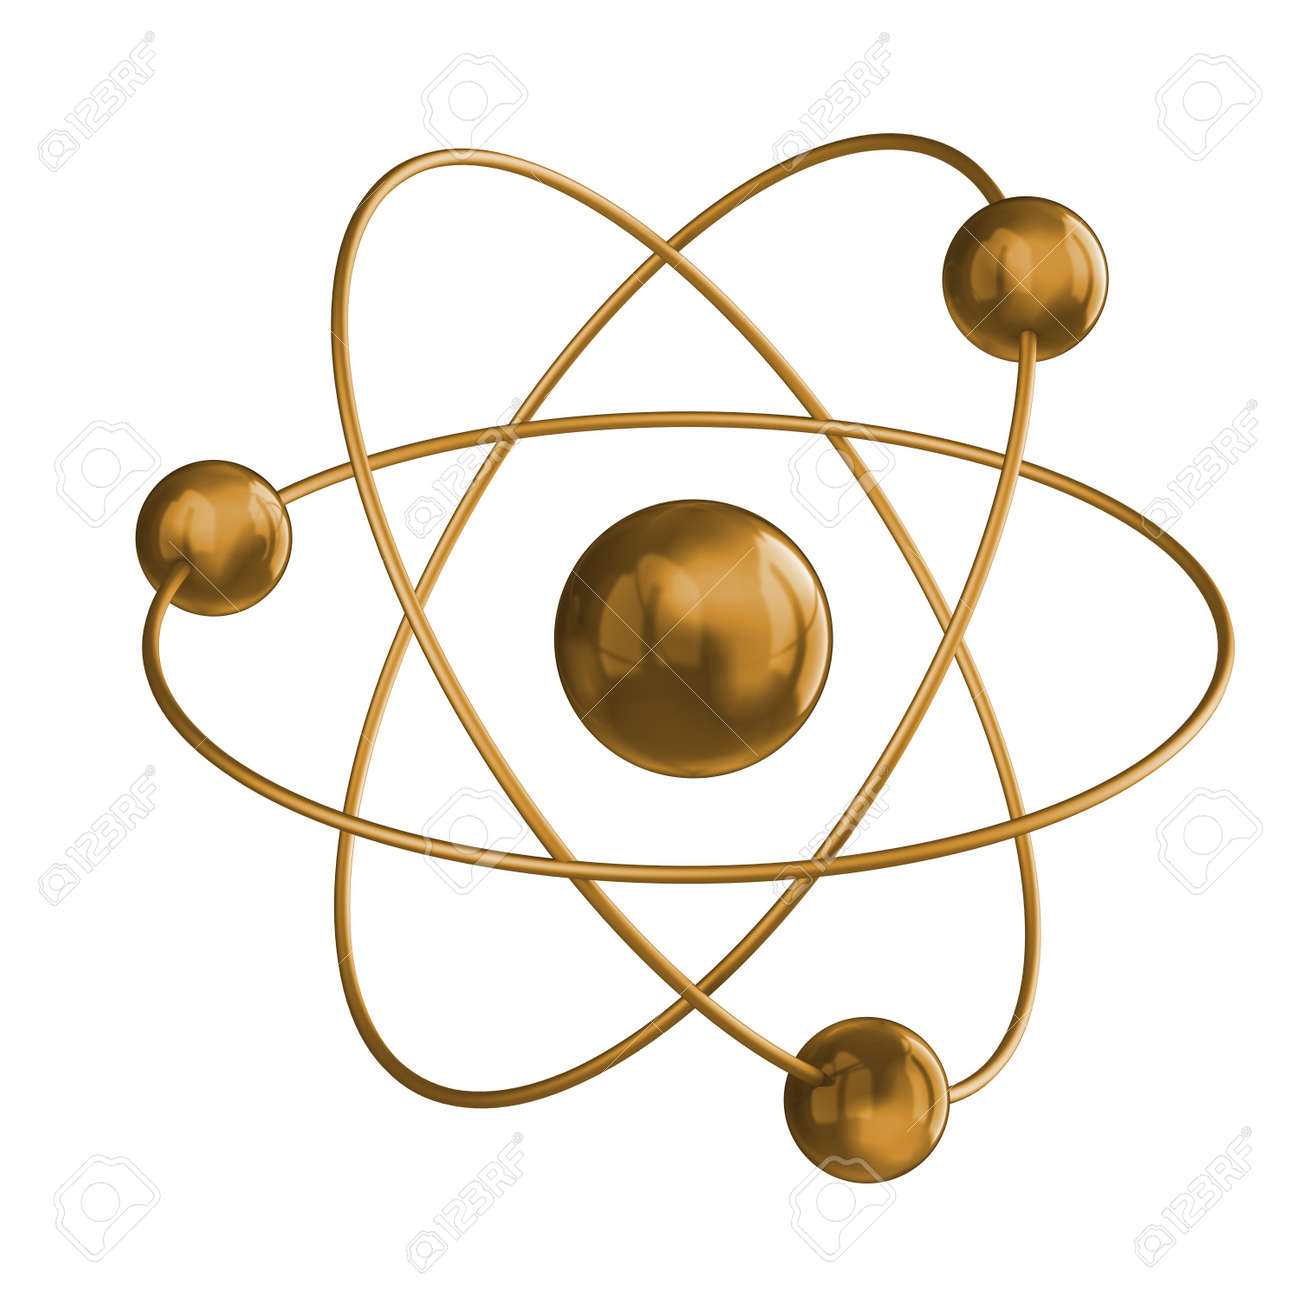 Gold science. White isolated 3d Stock Photo - 8988144